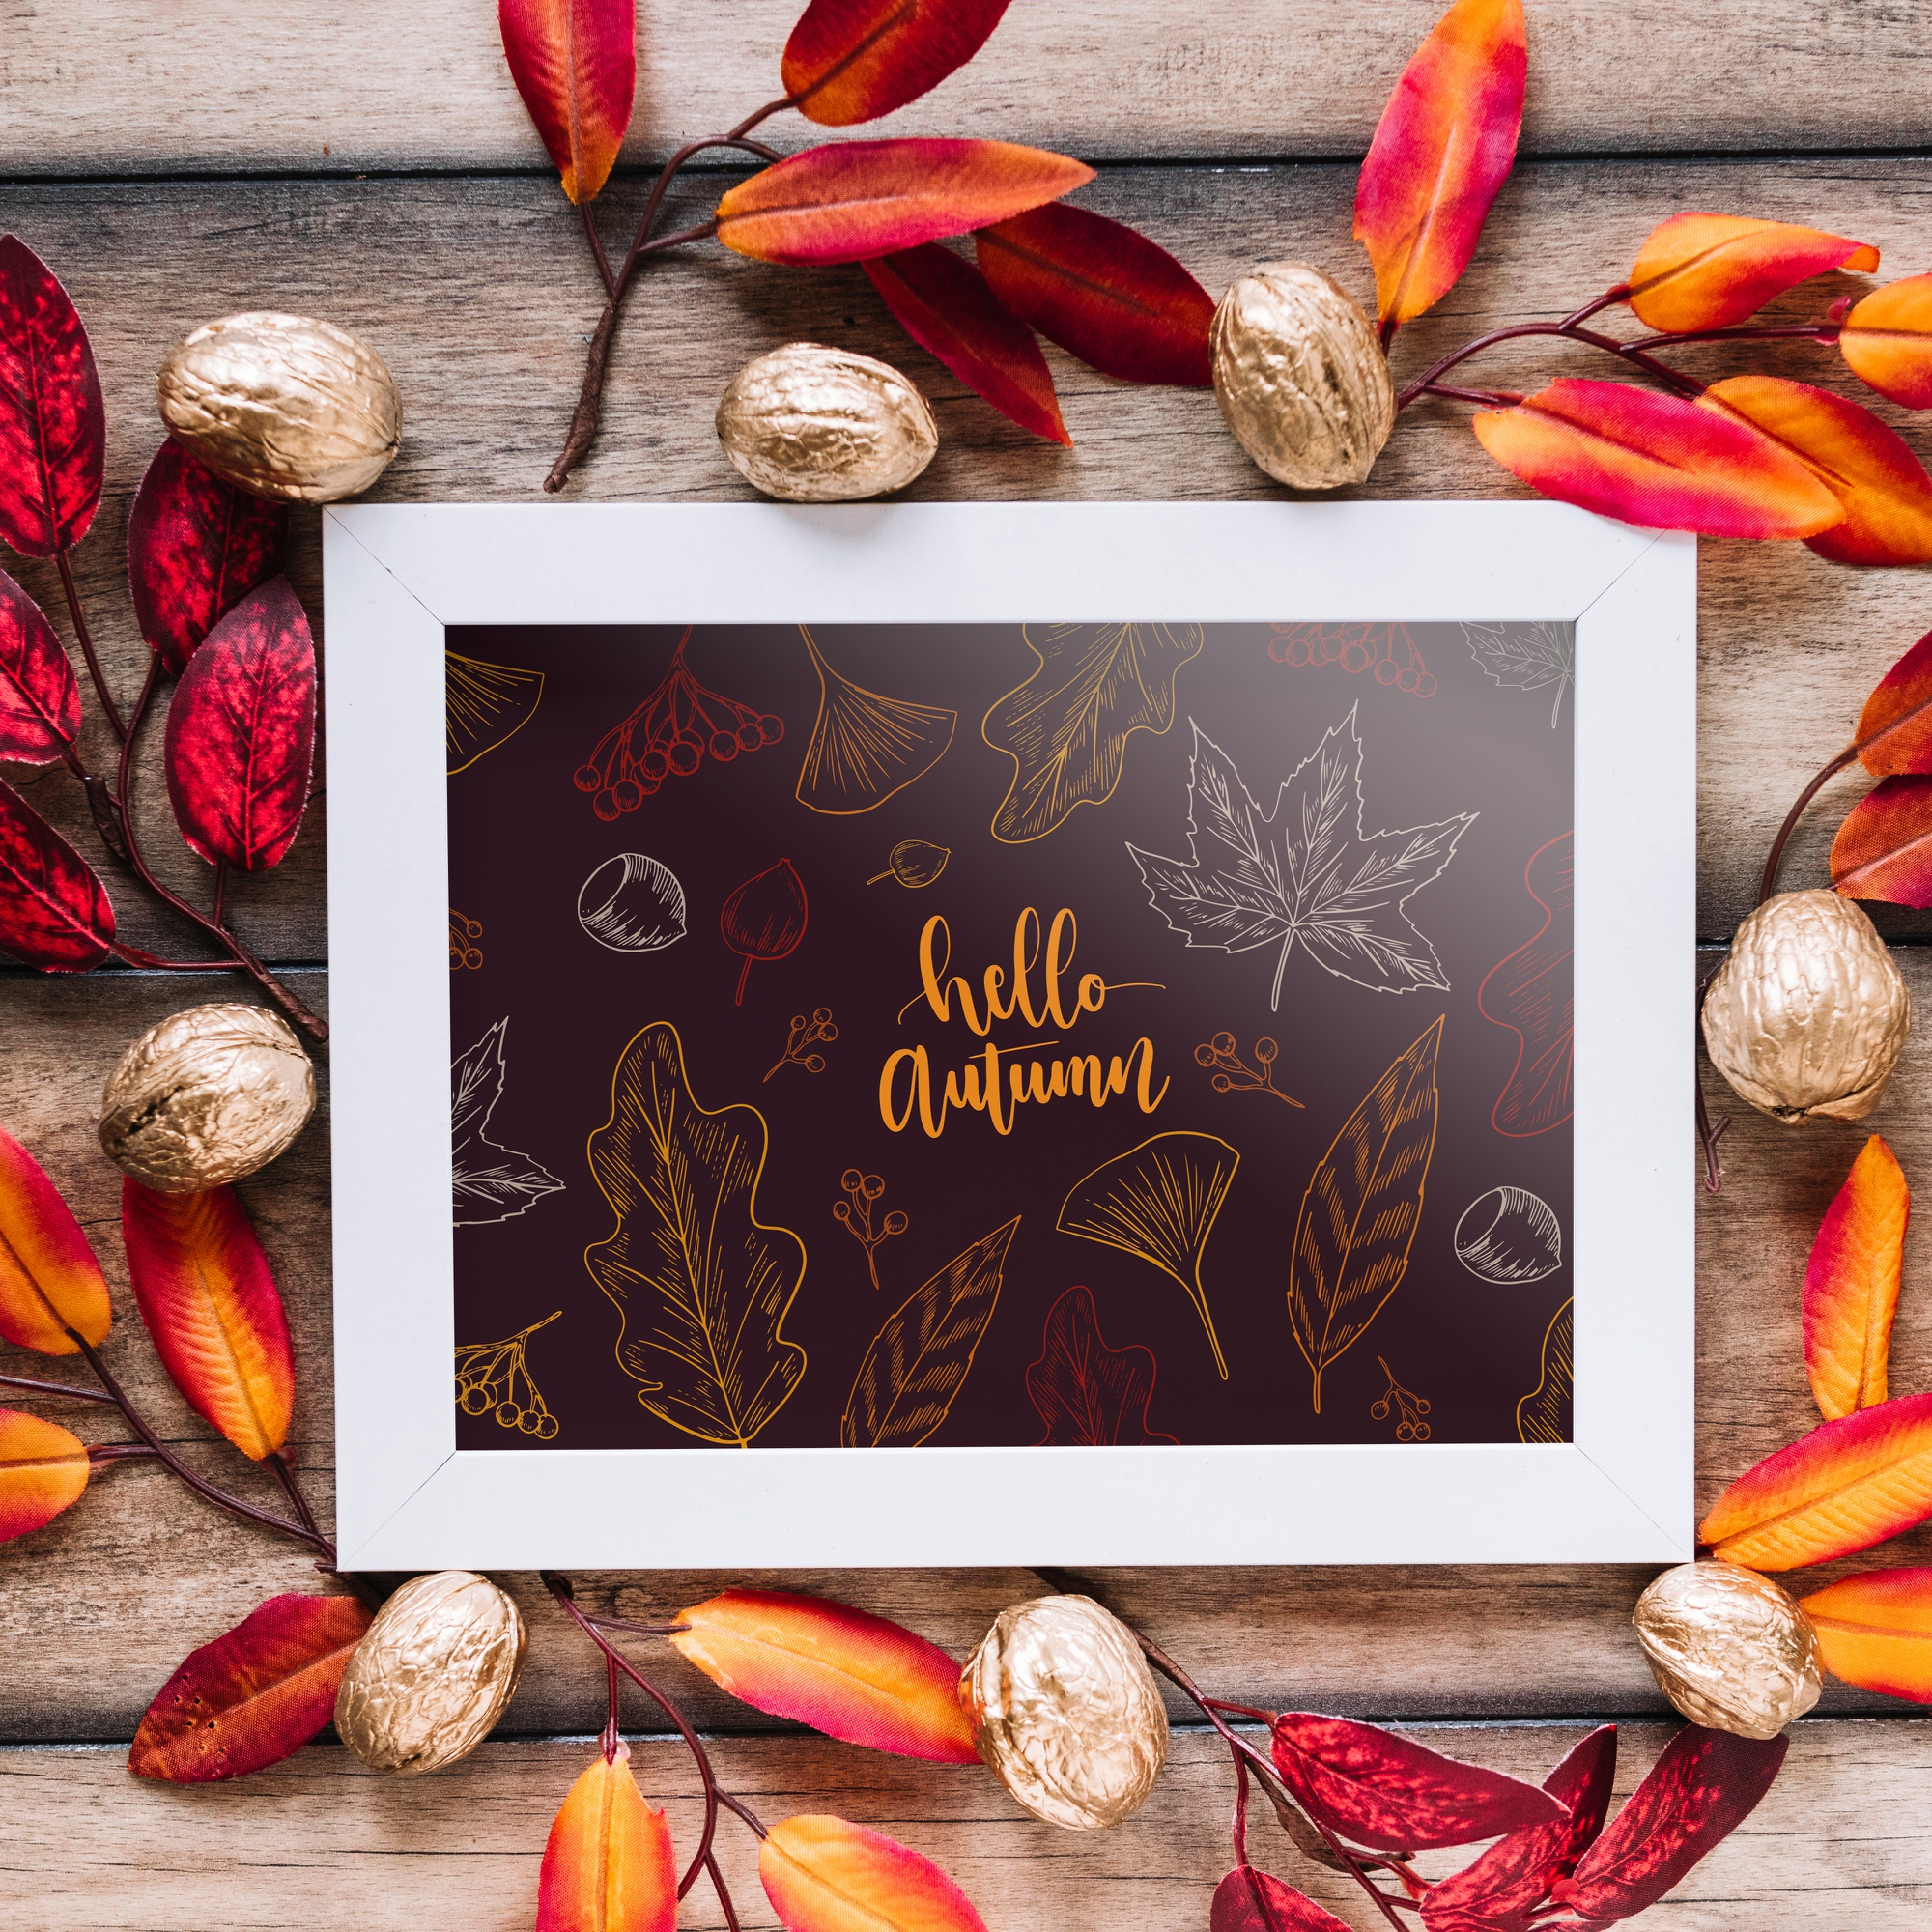 Autumn mockup with frame